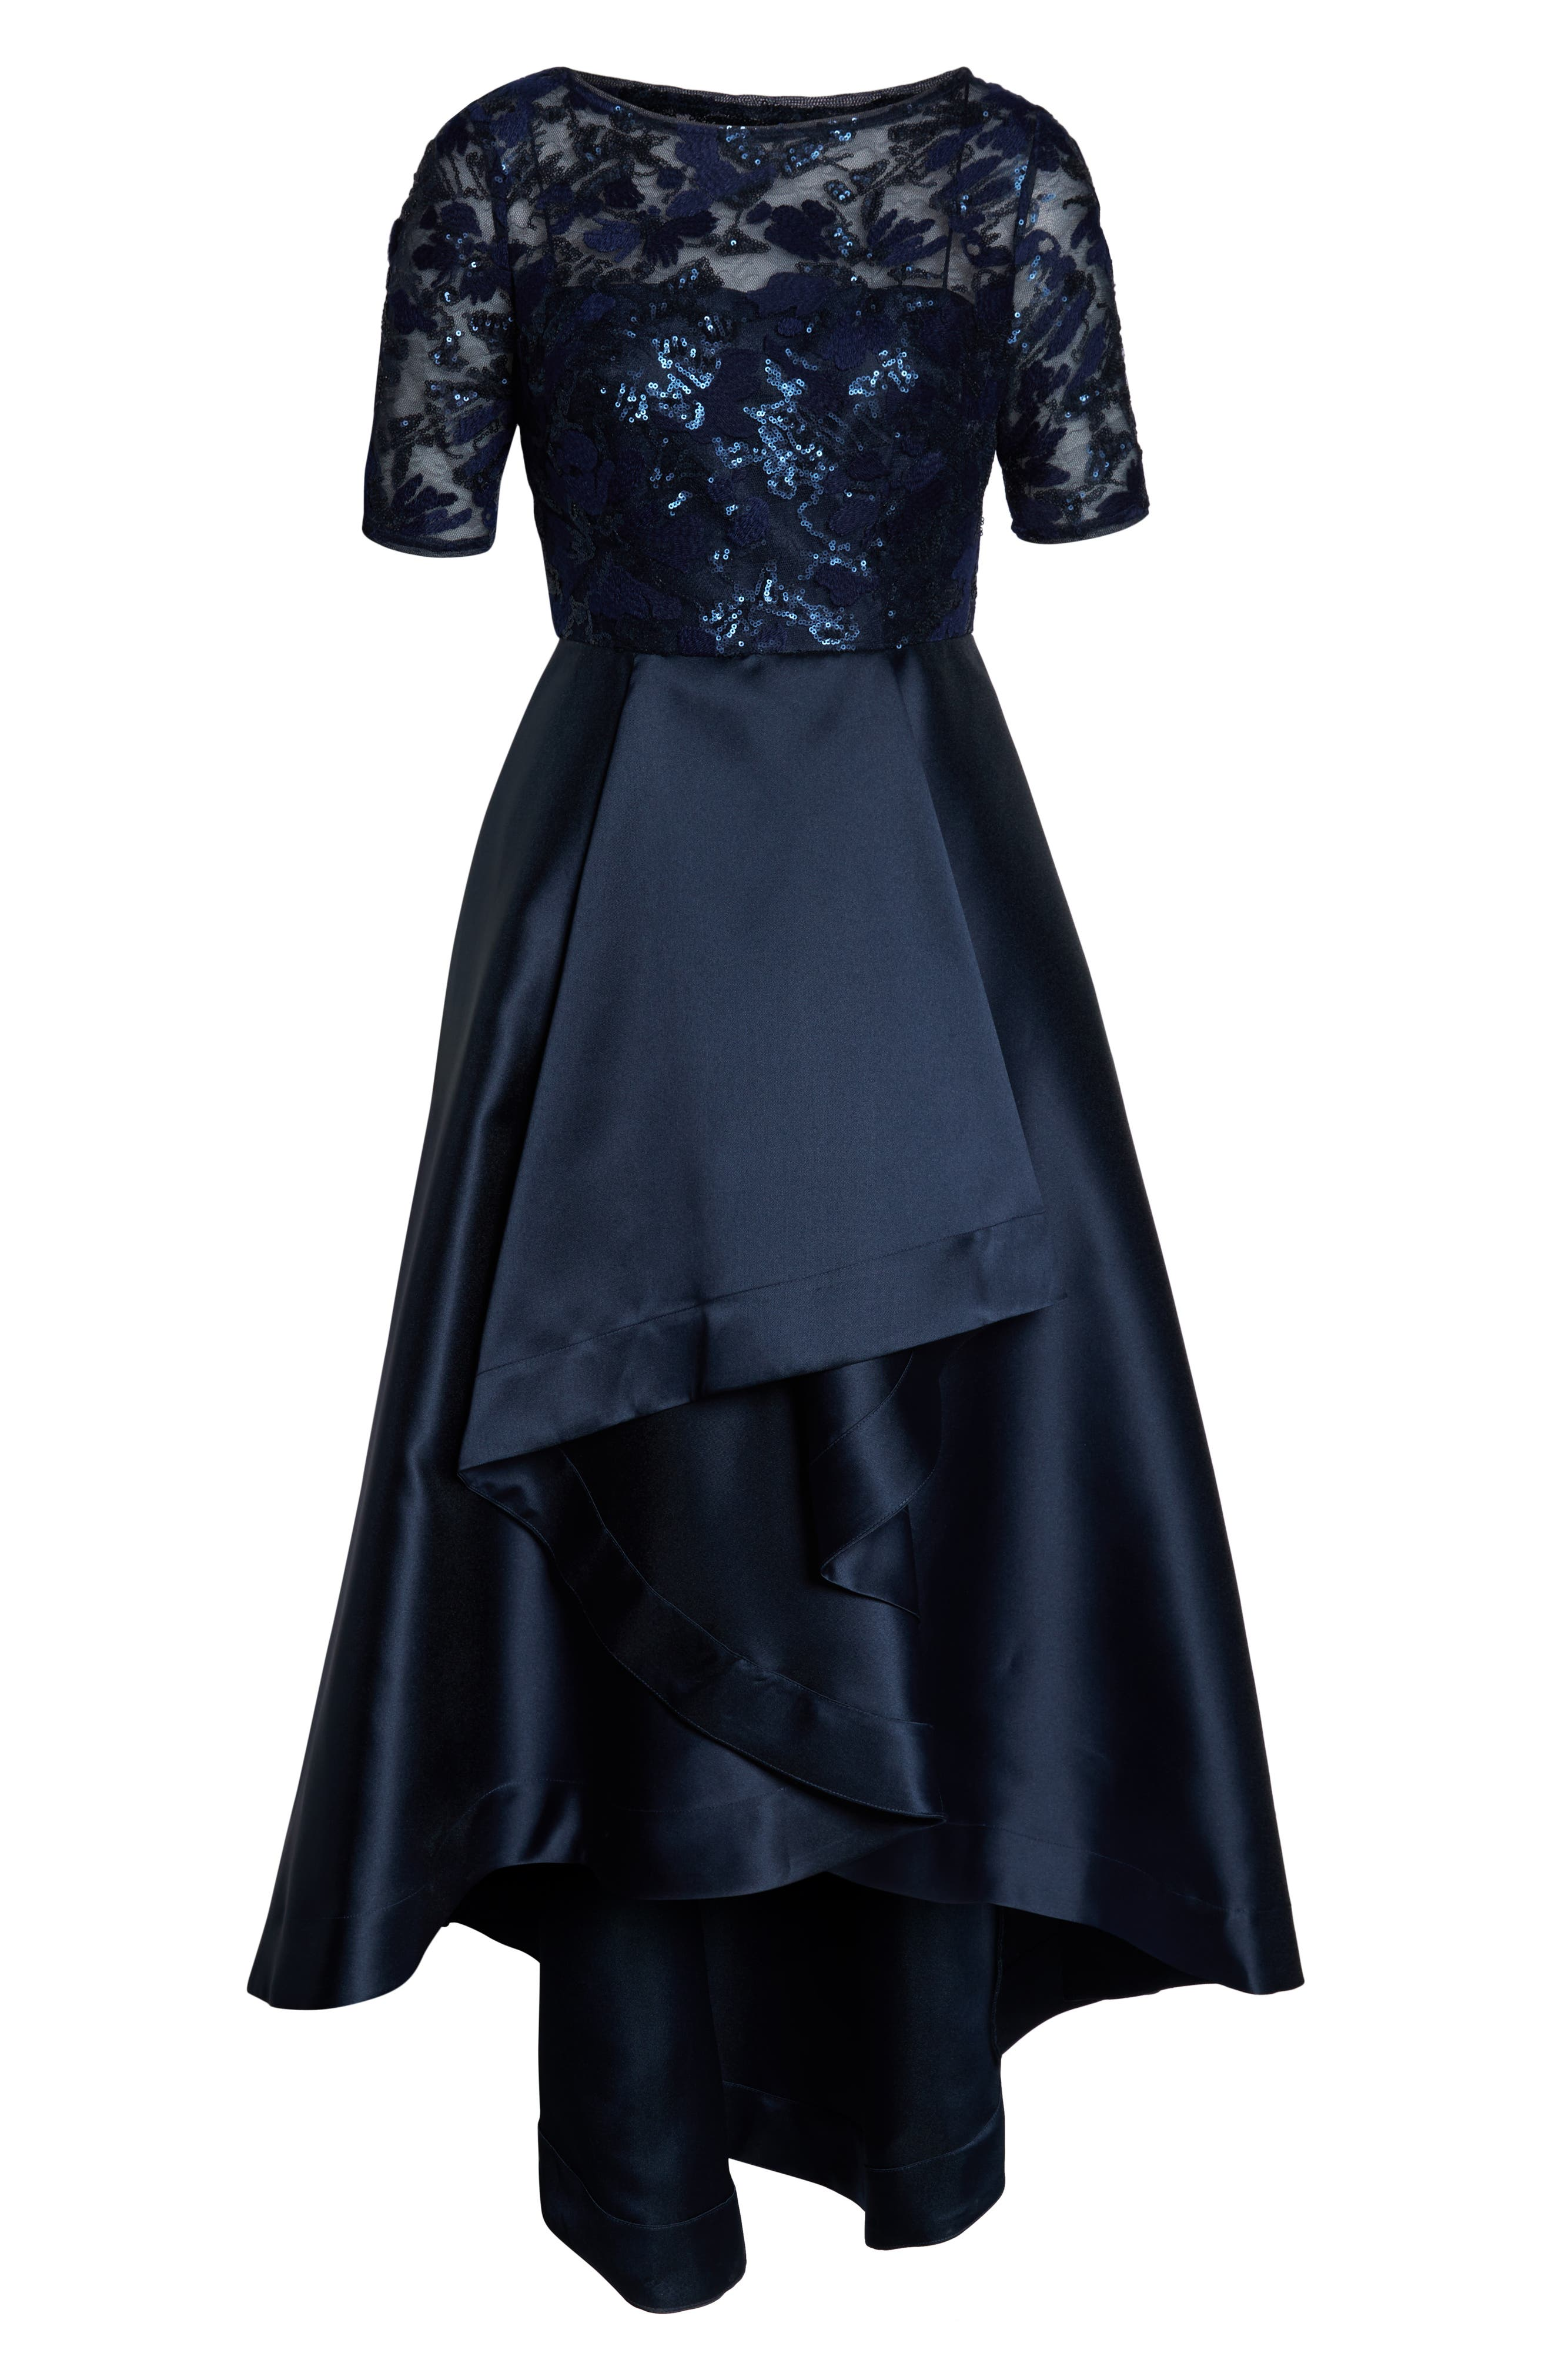 ADRIANNA PAPELL, Sequin Lace High/Low Evening Dress, Alternate thumbnail 7, color, MIDNIGHT